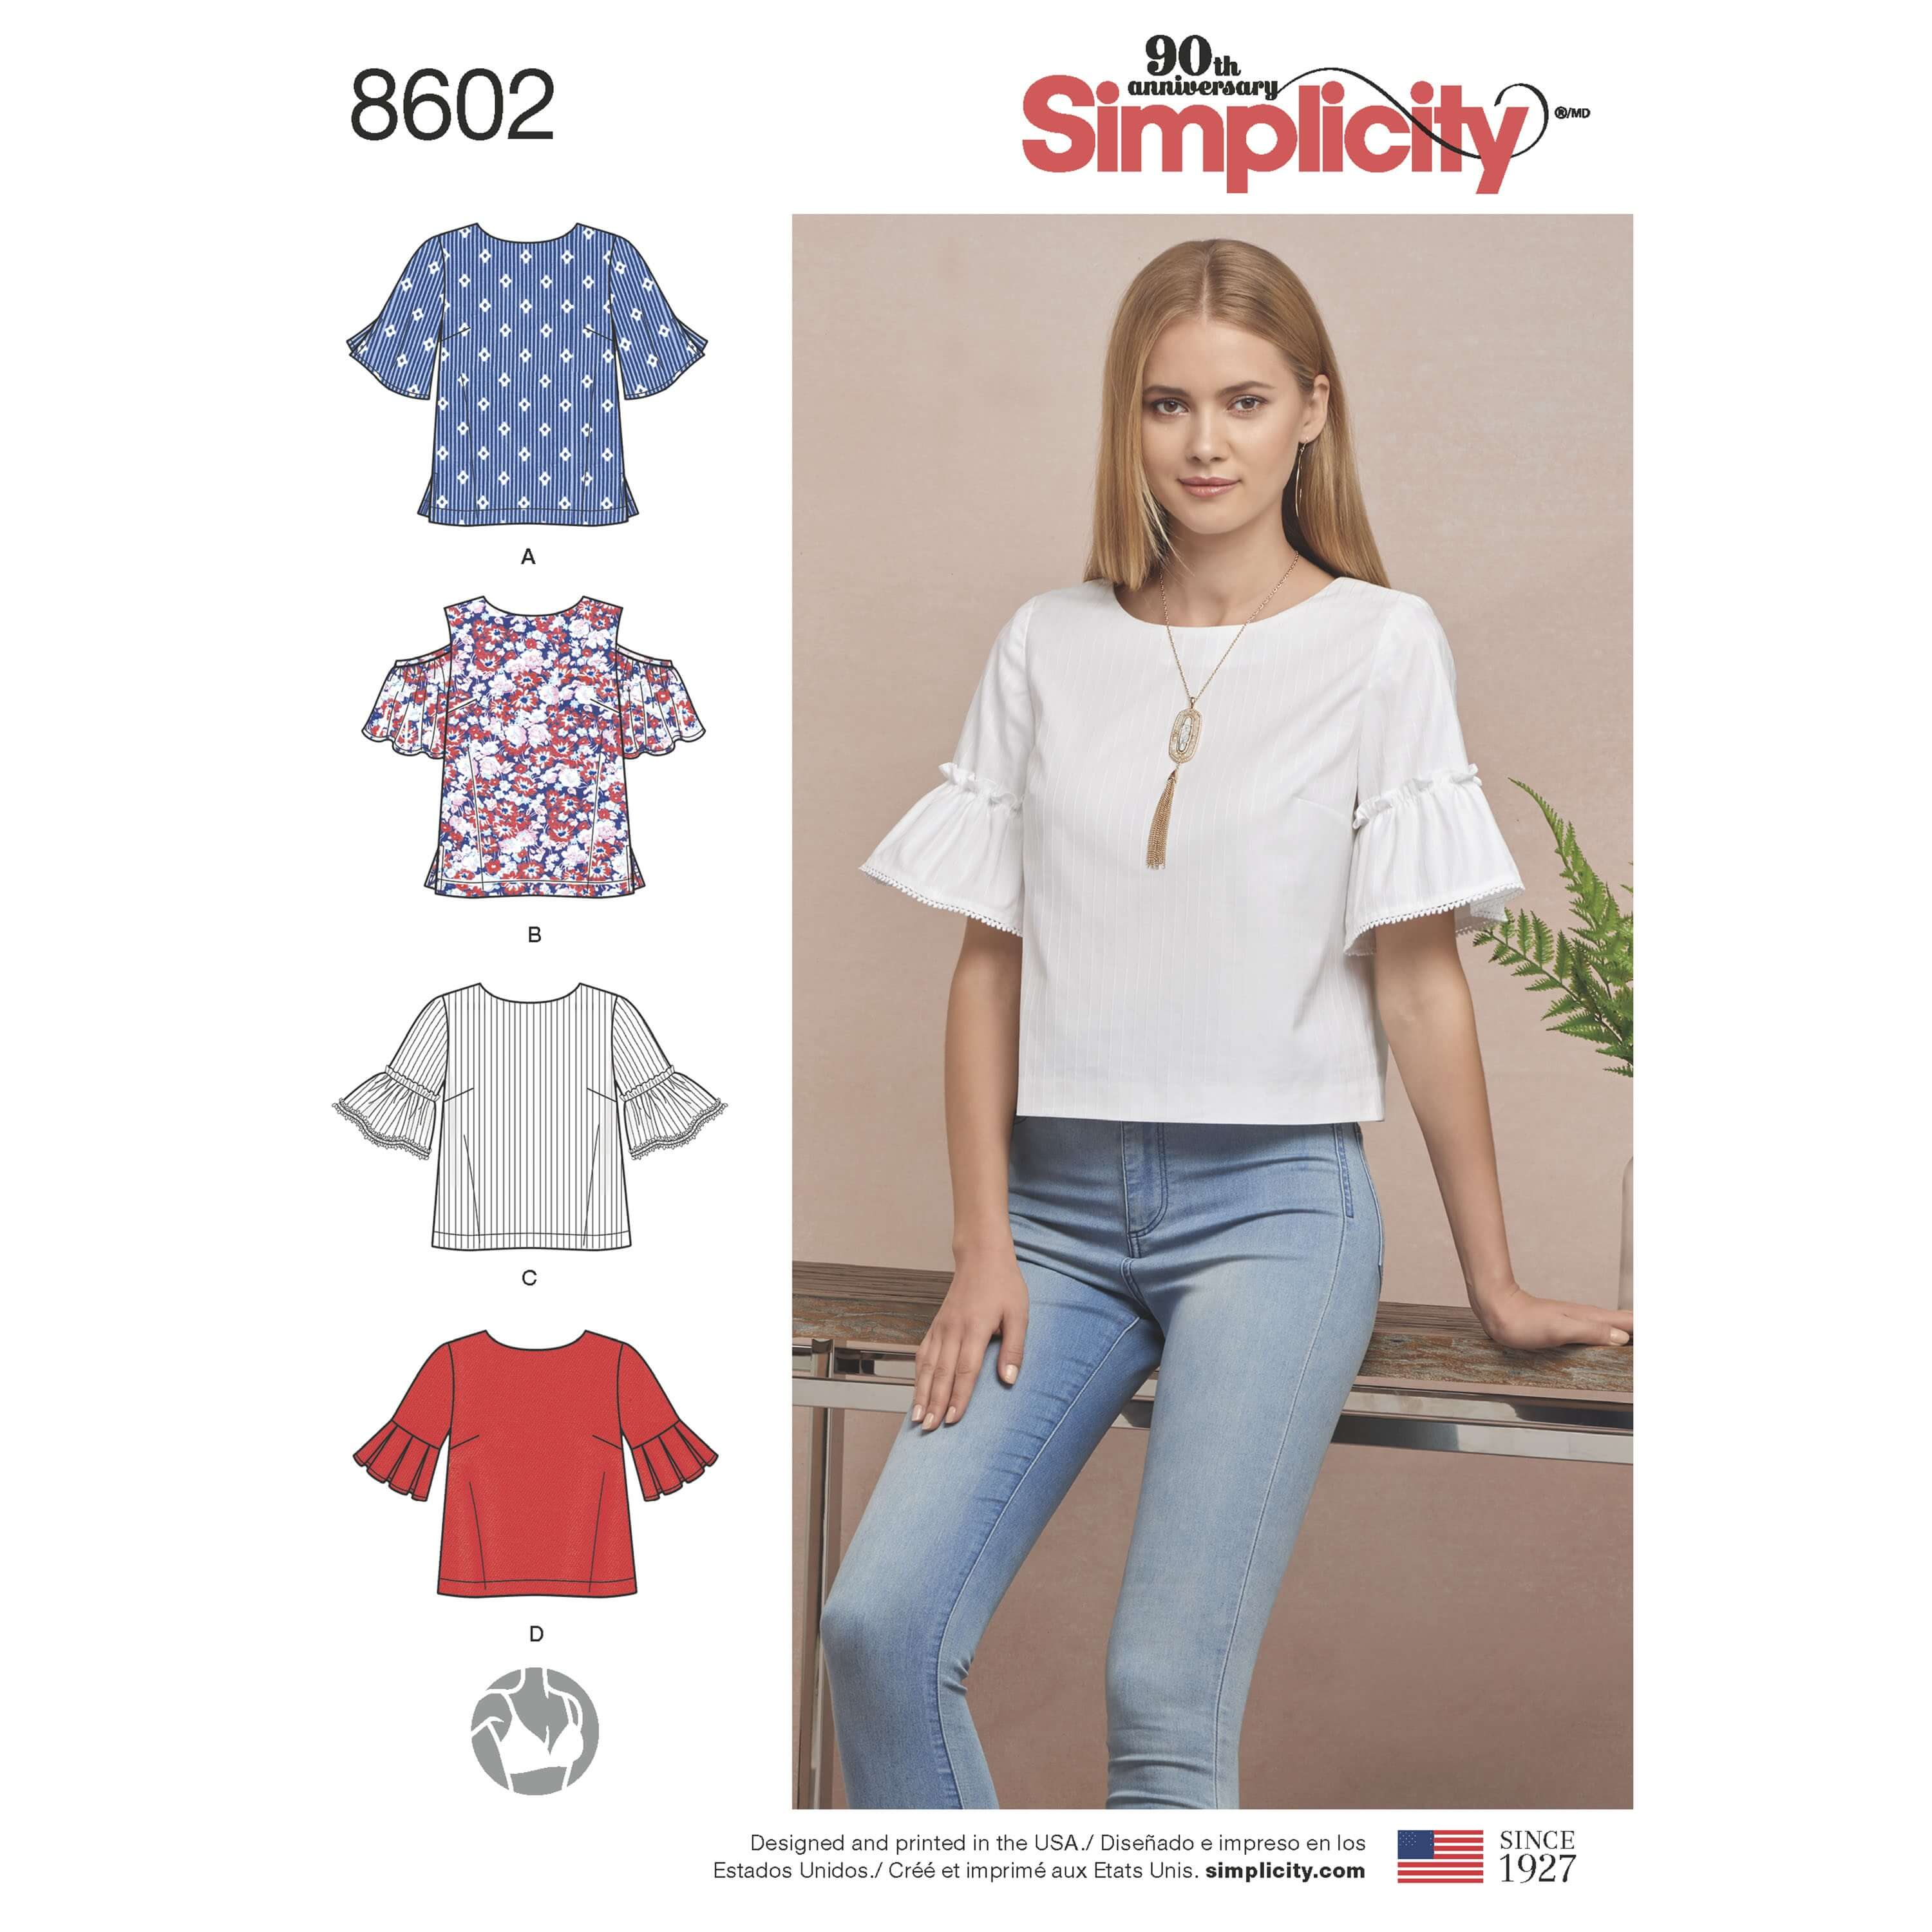 Simplicity Sewing Pattern 8602 Women's Everyday Shell Tops with Flared Sleeves